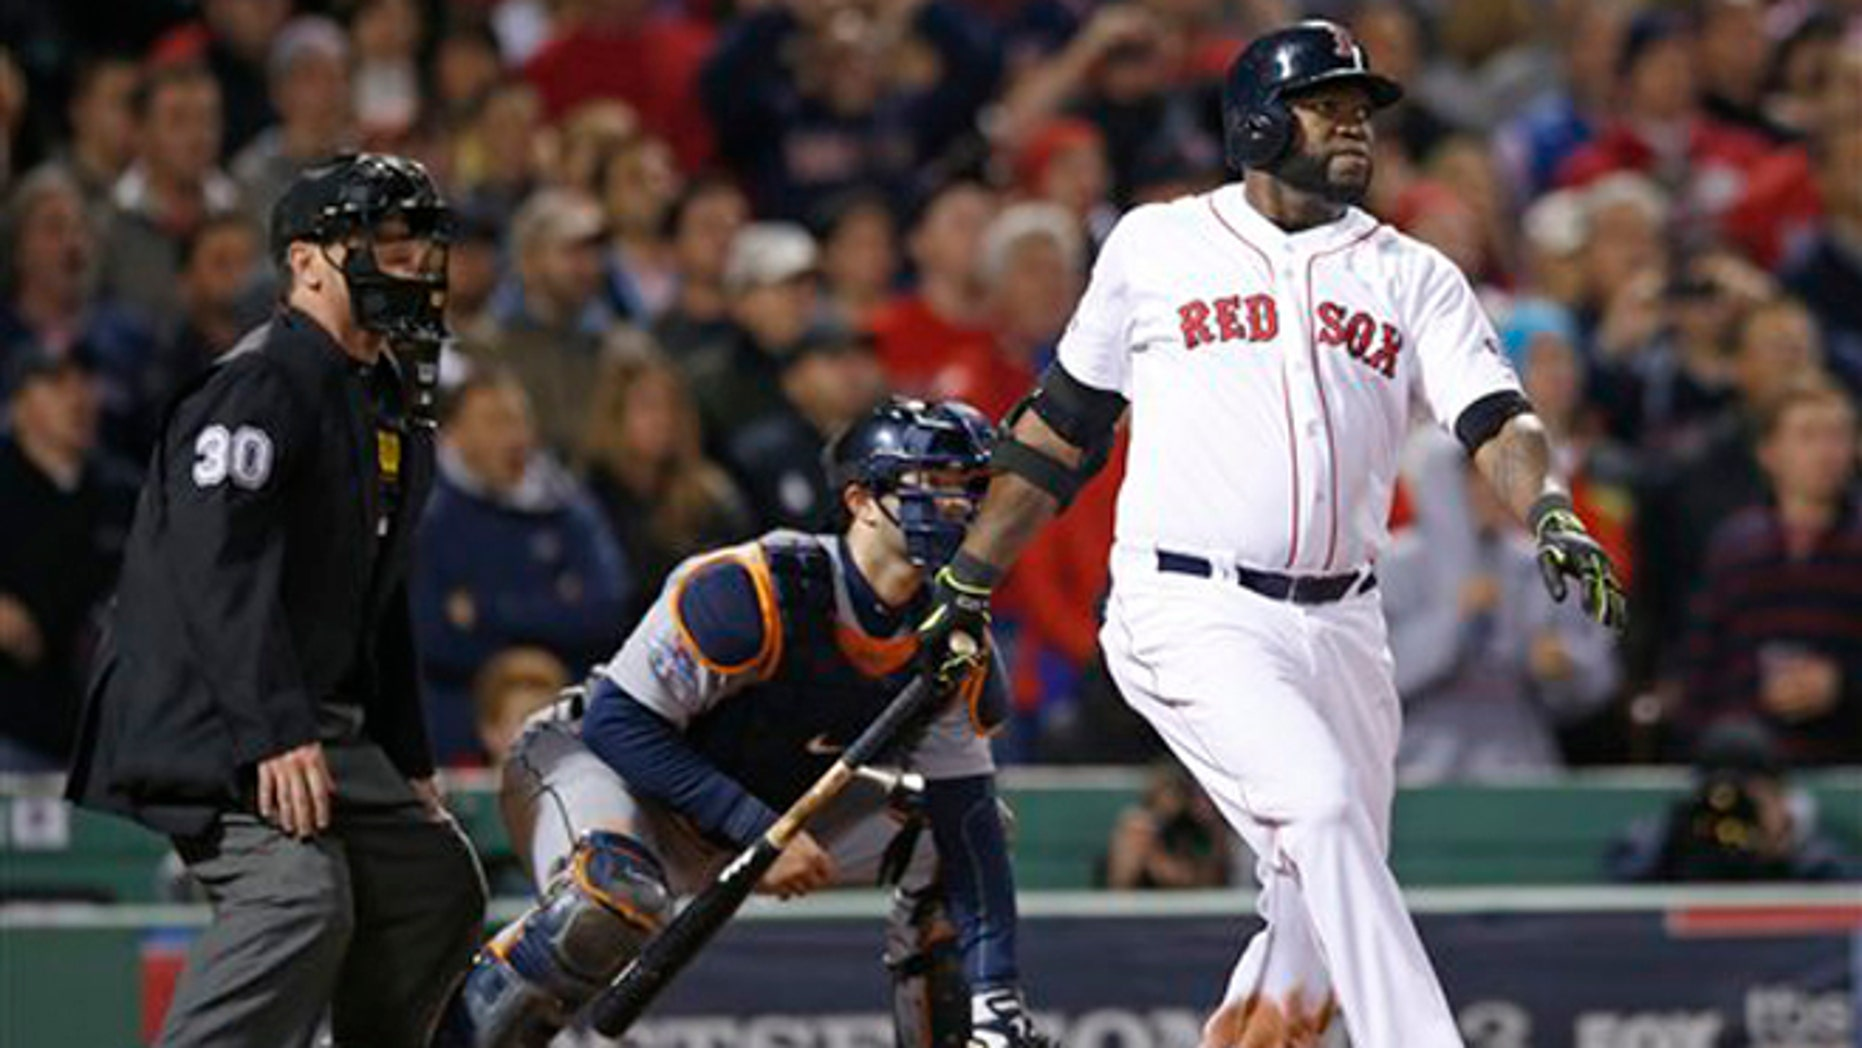 Boston Red Sox's David Ortiz hits a grand slam home run in the eighth inning during Game 2 of the American League baseball championship series against the Detroit Tigers Sunday, Oct. 13, 2013, in Boston. (AP Photo/Elise Amendola)